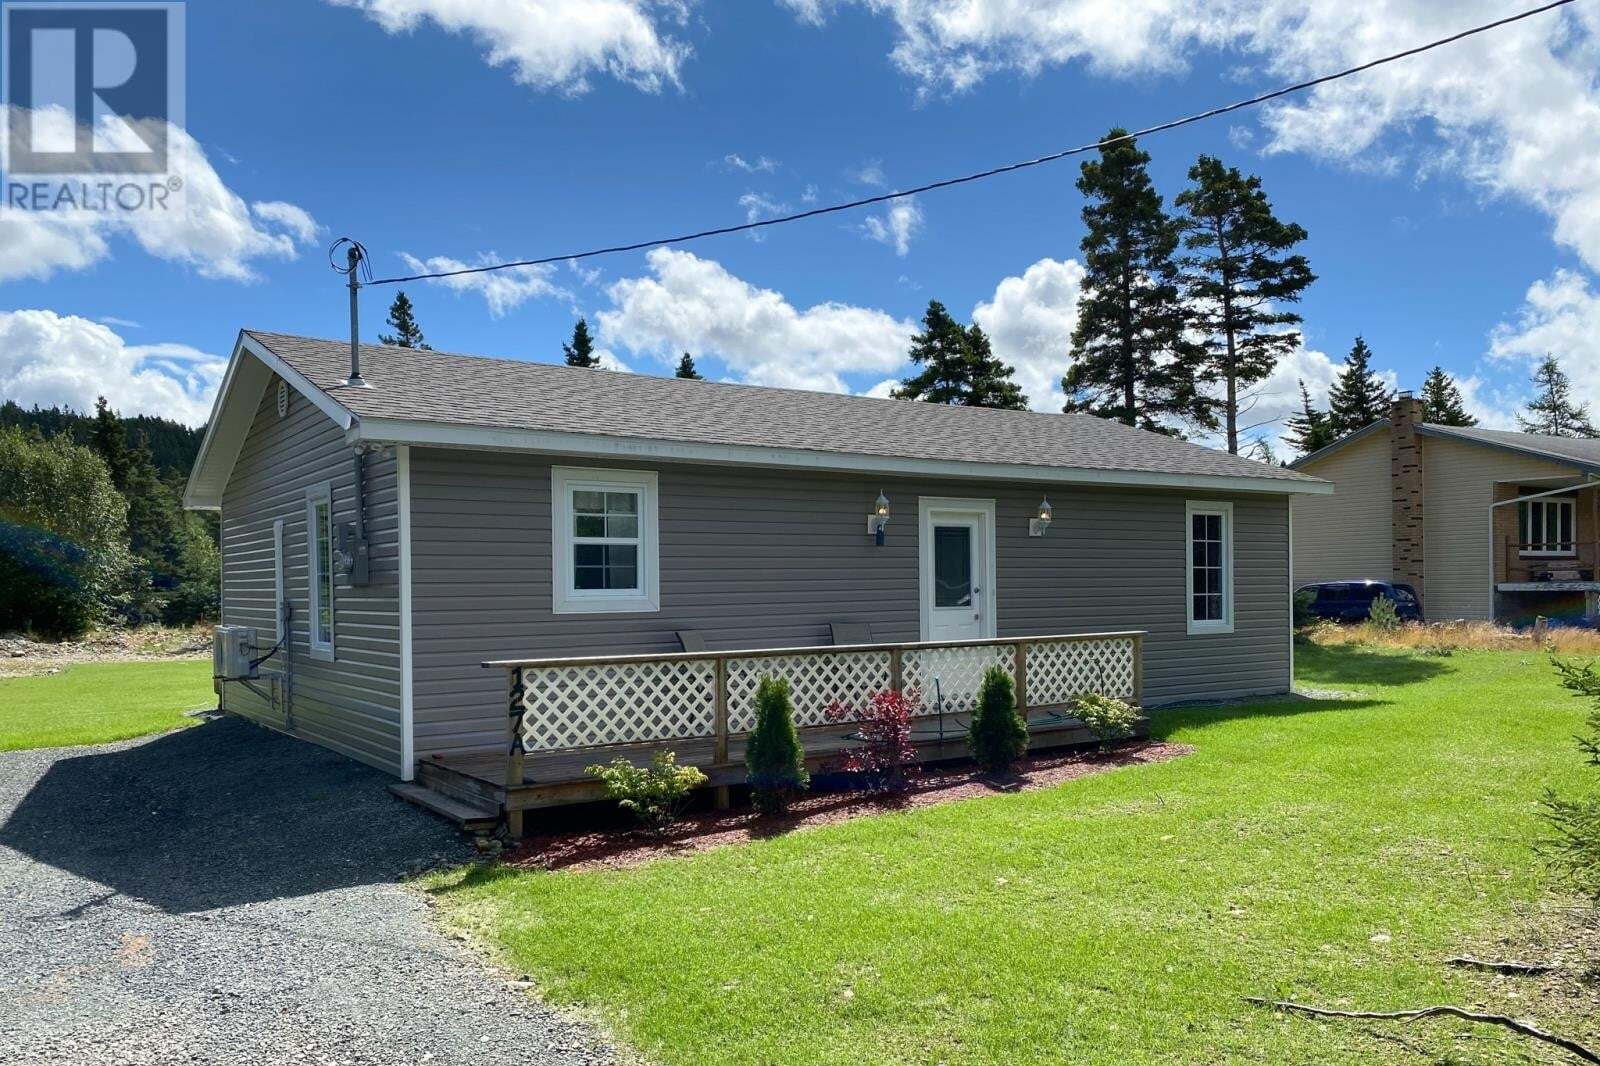 House for sale at 127 Hodgewater Line Rd South River Newfoundland - MLS: 1217012